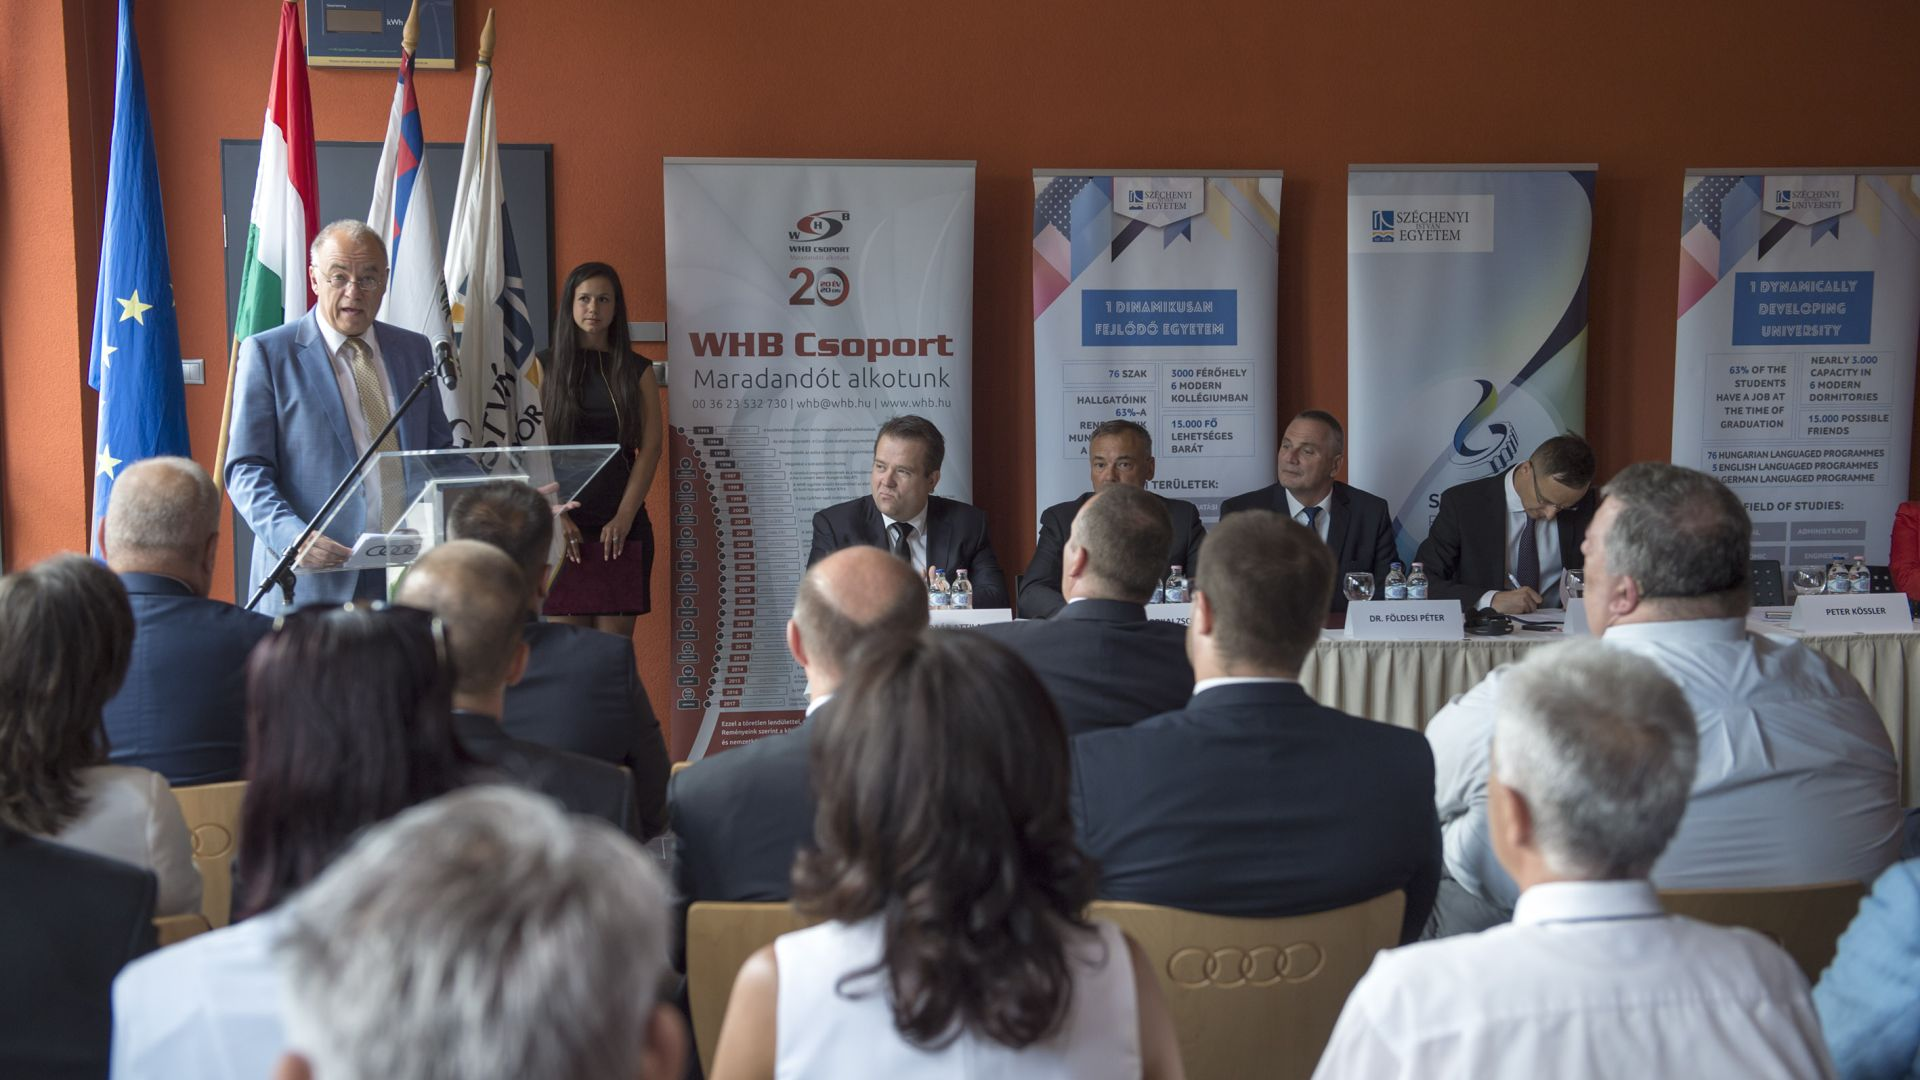 All stakeholders benefit from the cooperation between industry and higher education